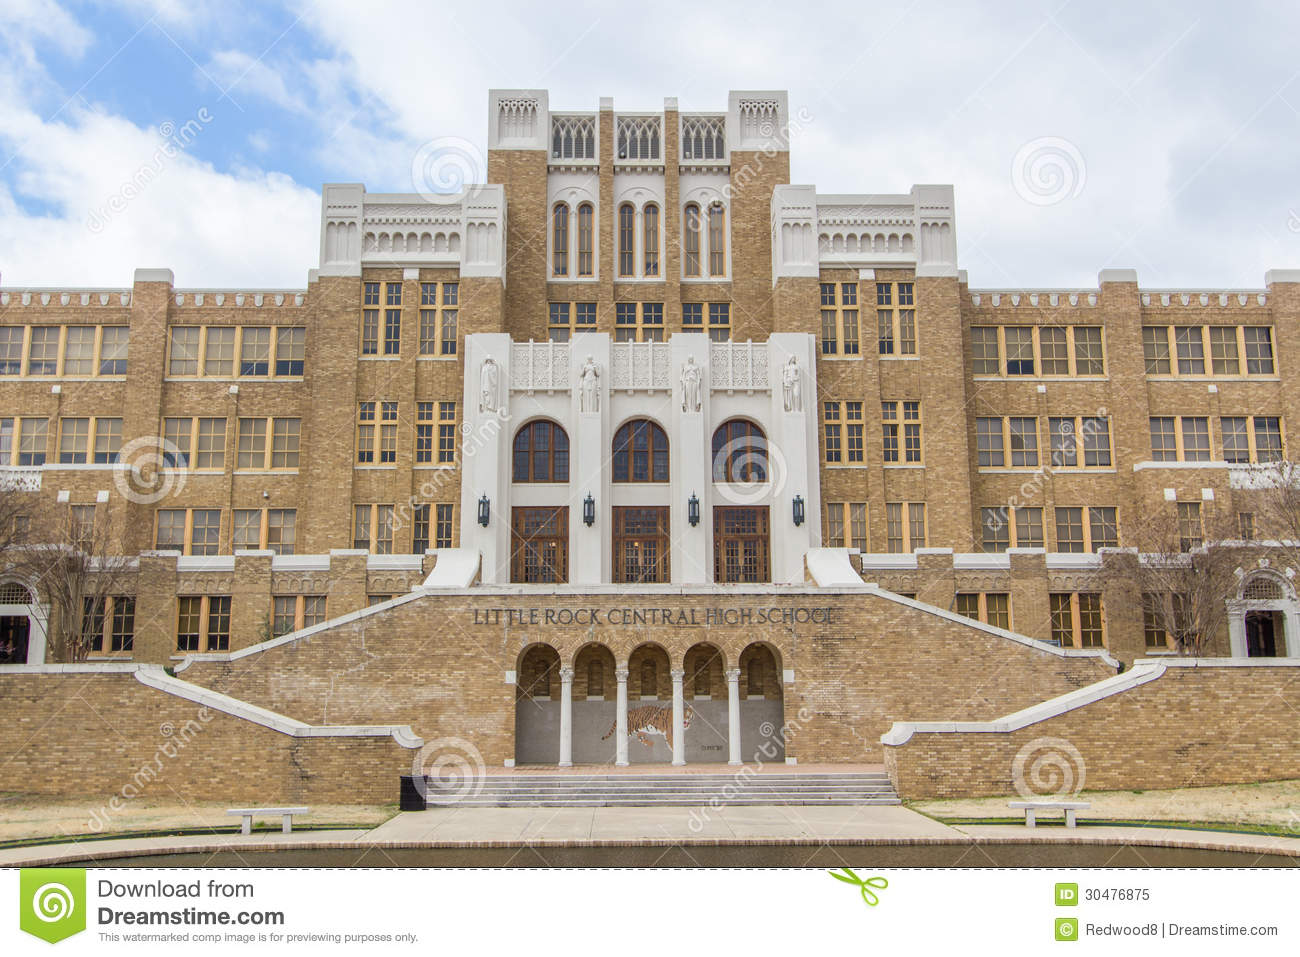 Little rock central high school editorial image image for Historical sites in the usa